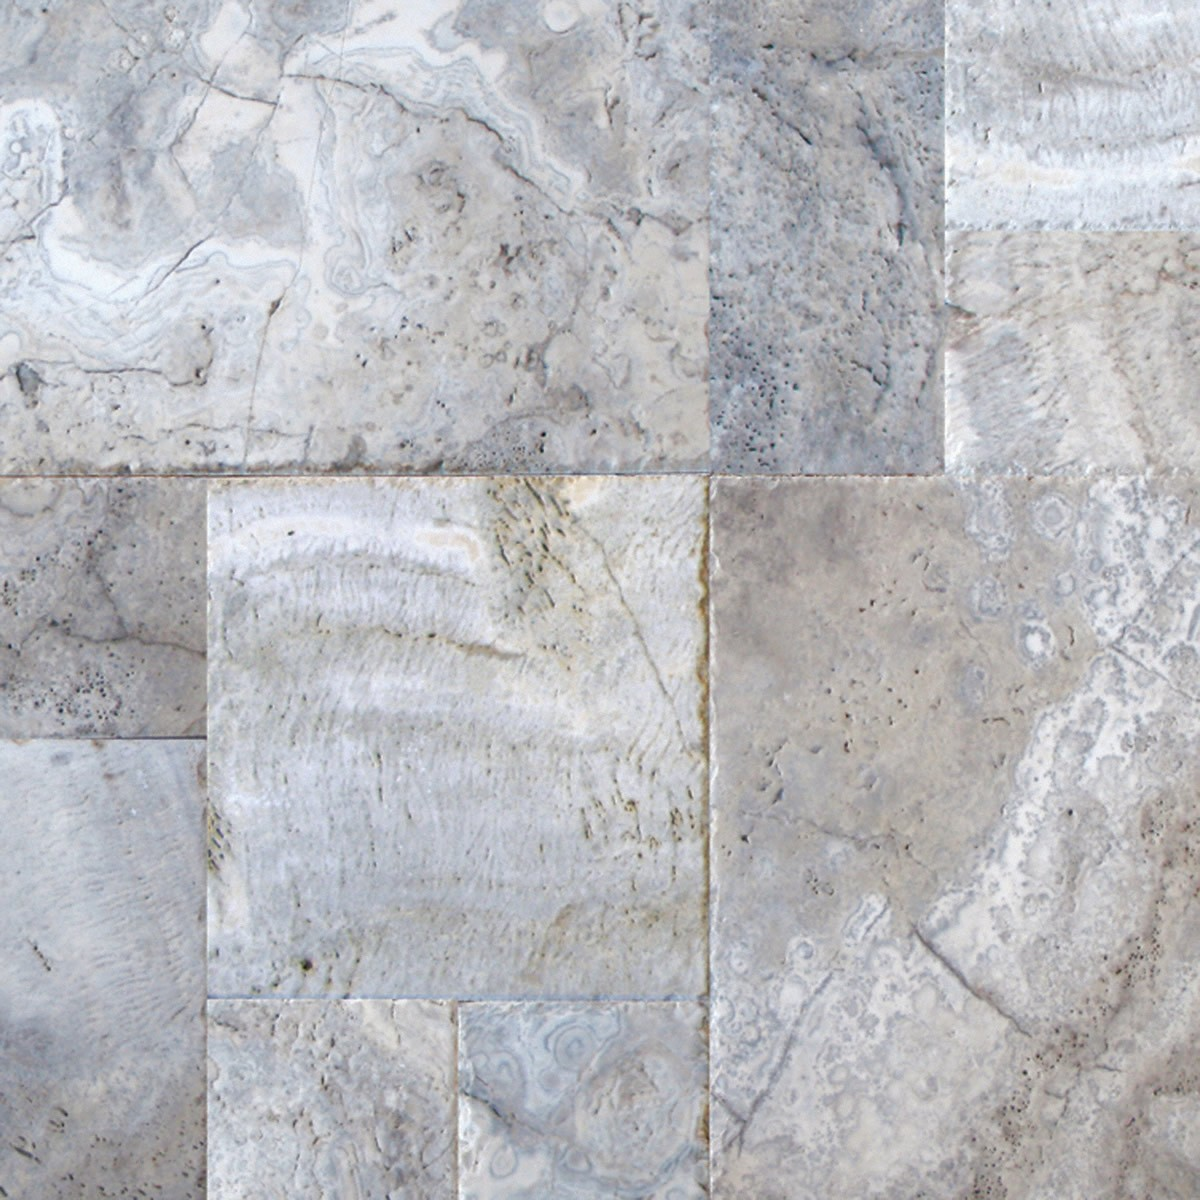 SILVER TRAVERTINE 16 in  x 16 in  x 1 25 in  TUMBLED PAVERS